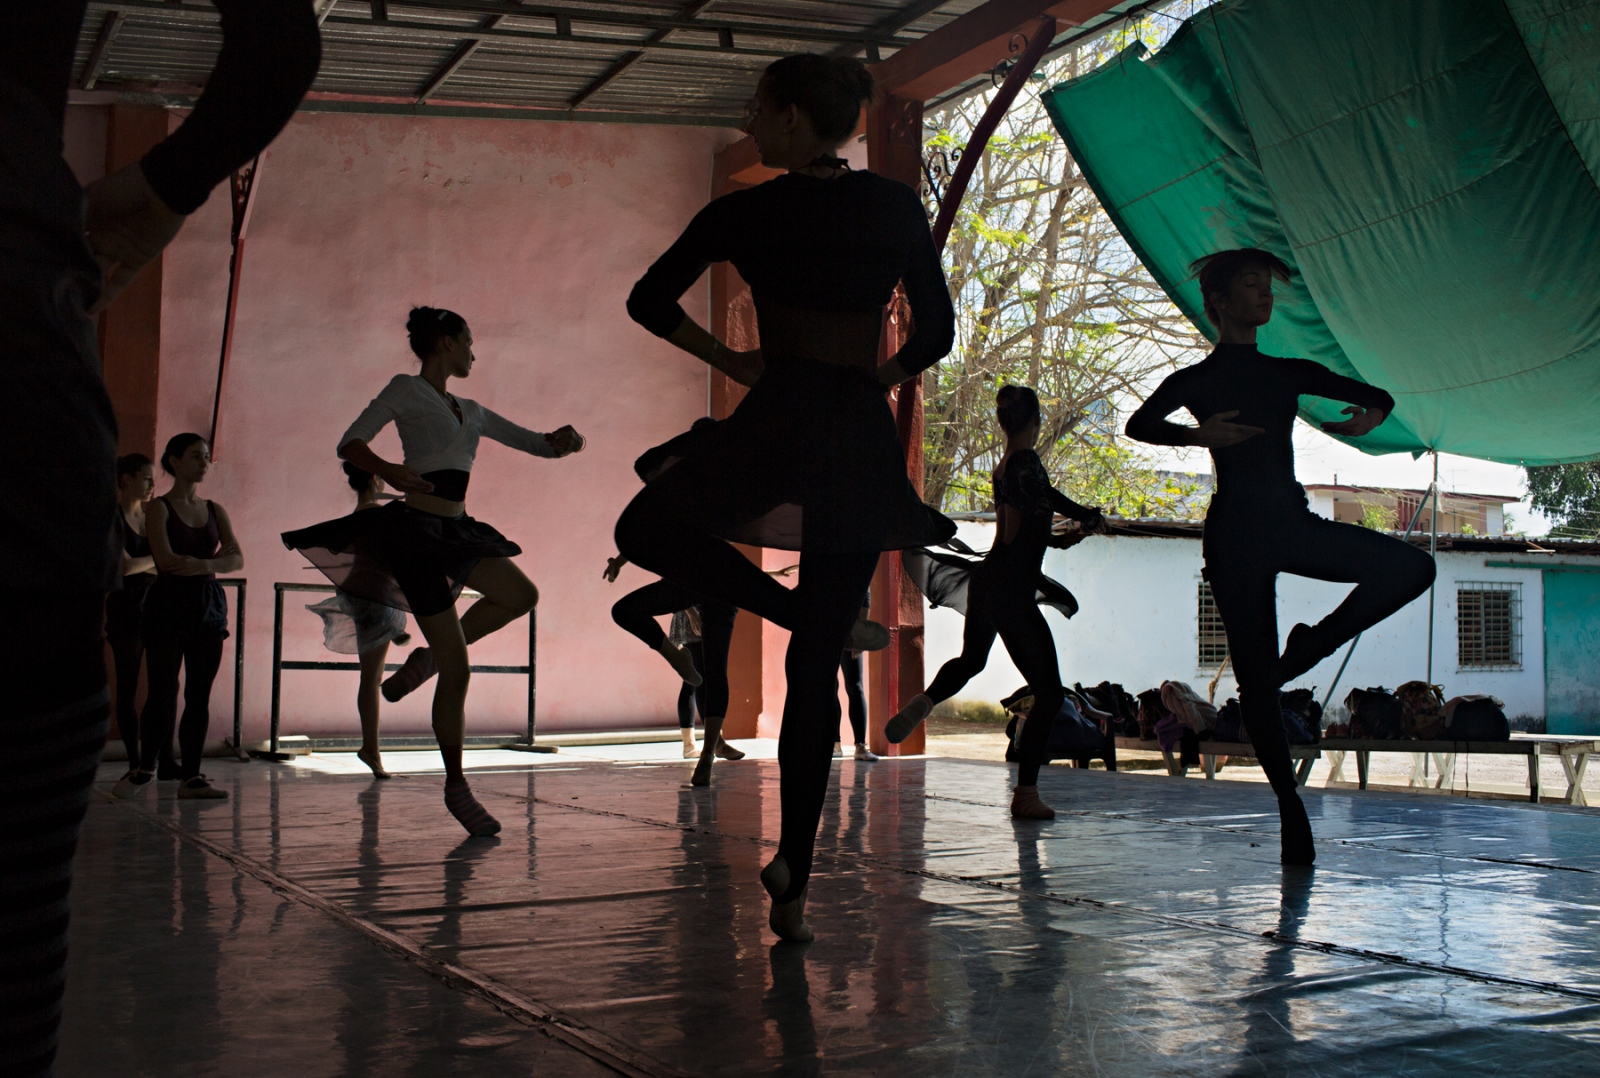 At the rehersal. Laura Alonso Academy is an offset of the National Ballet. To date, most of its graduates have defected to various countries outside of Cuba. The Academy functions mostly on donations as the funds for the arts are mostly spent on the National Ballet.